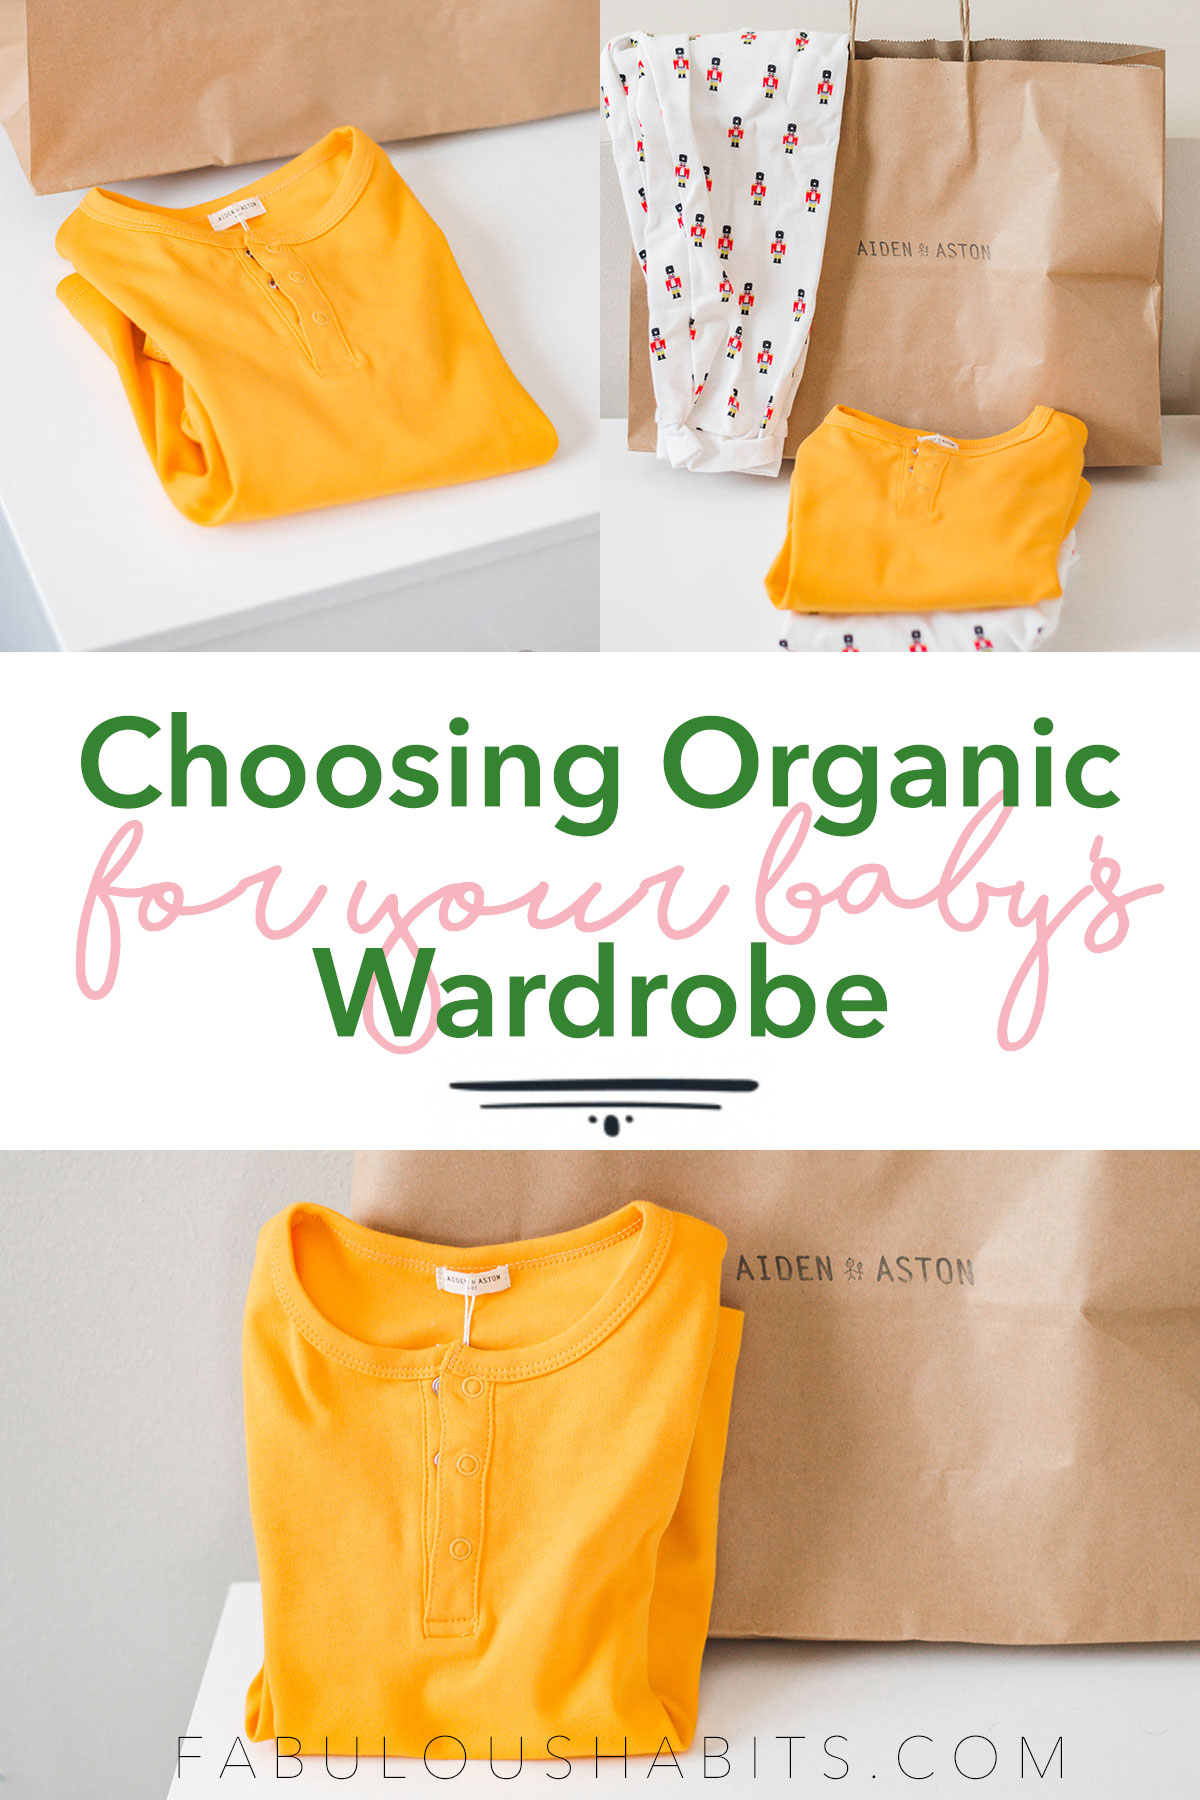 Today, we are outlining the benefits of choosing organic for your baby's clothes. There are so many reasons why organic cotton is so much better than its traditional counterpart (softer, more durable, etc.)